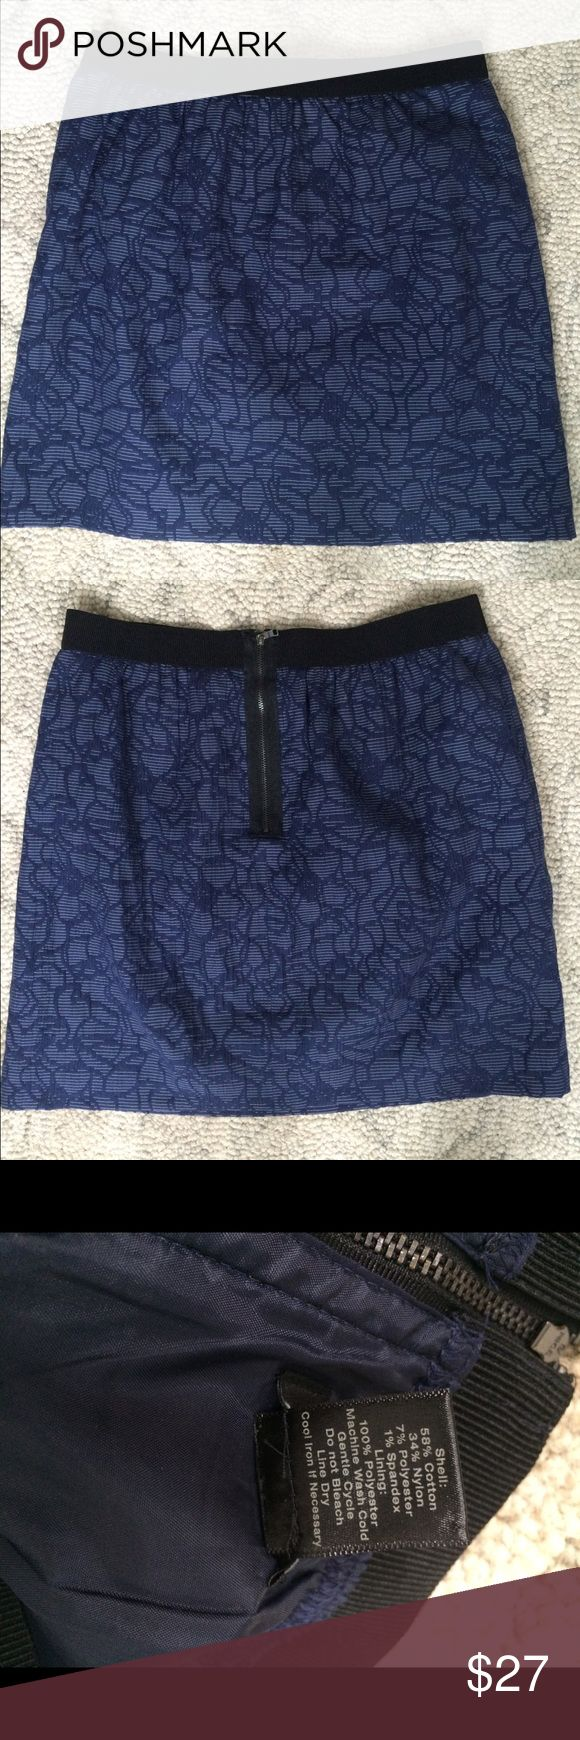 Navy blue floral Ann Taylor skirt 10 P petite This skirt is in excellent, like new condition. The design is a black and navy floral print. It has a zipper in the back. The shape of the skirt is an A-line. This is a petite skirt, although it can also fit a regular size. Ann Taylor Skirts A-Line or Full